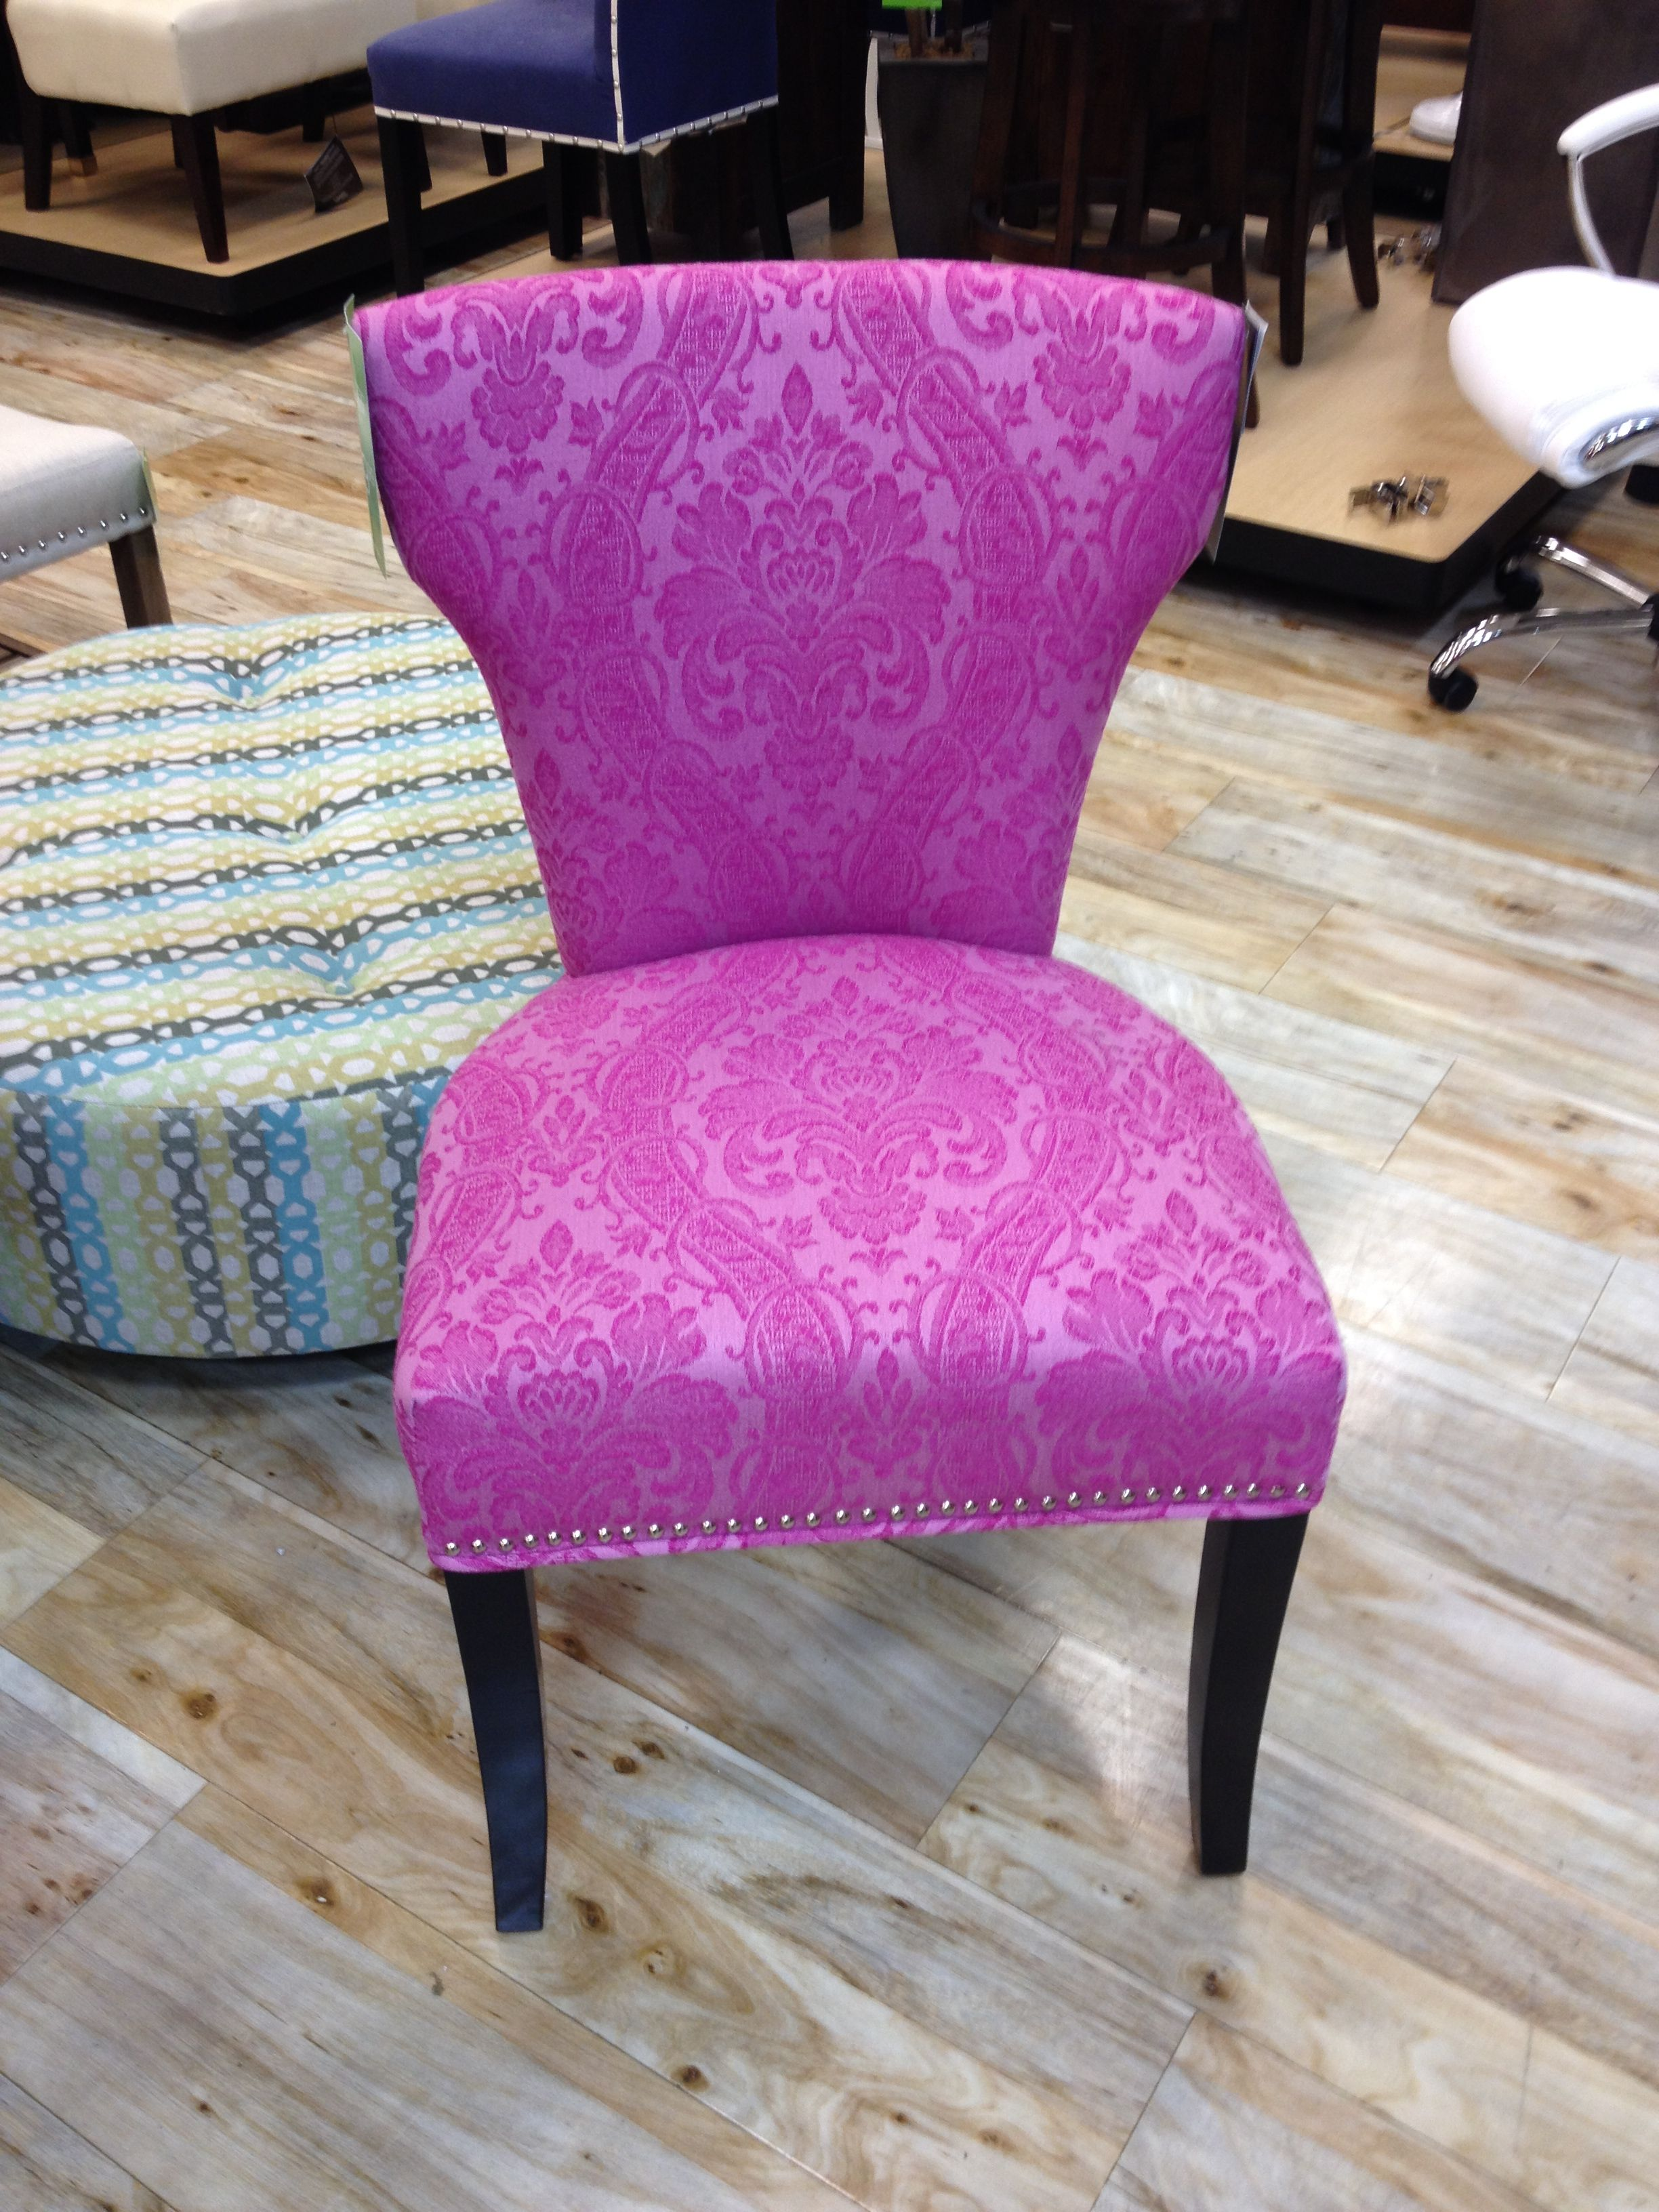 Cynthia Rowley Chair At Home Goods 129